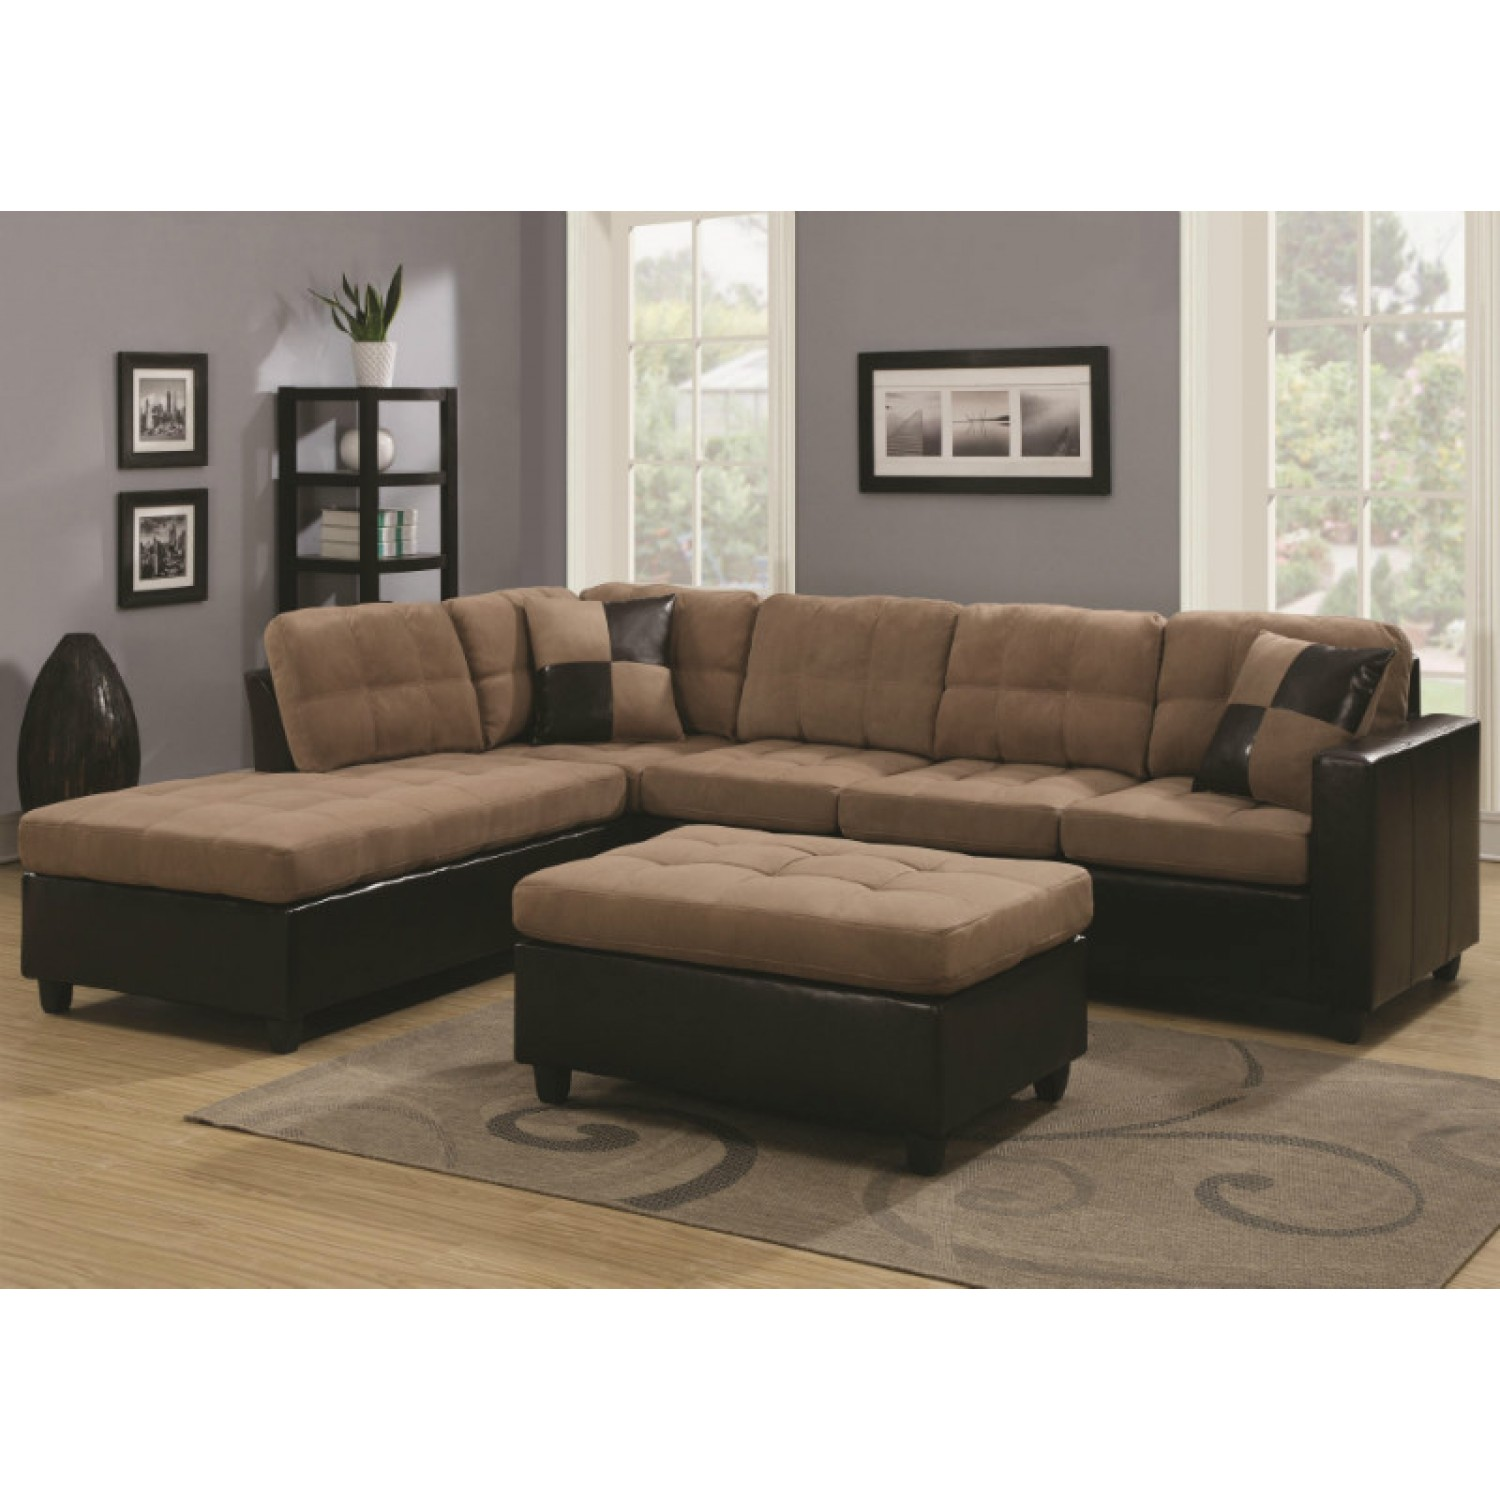 Where To Buy Cheap Sectional Sofas